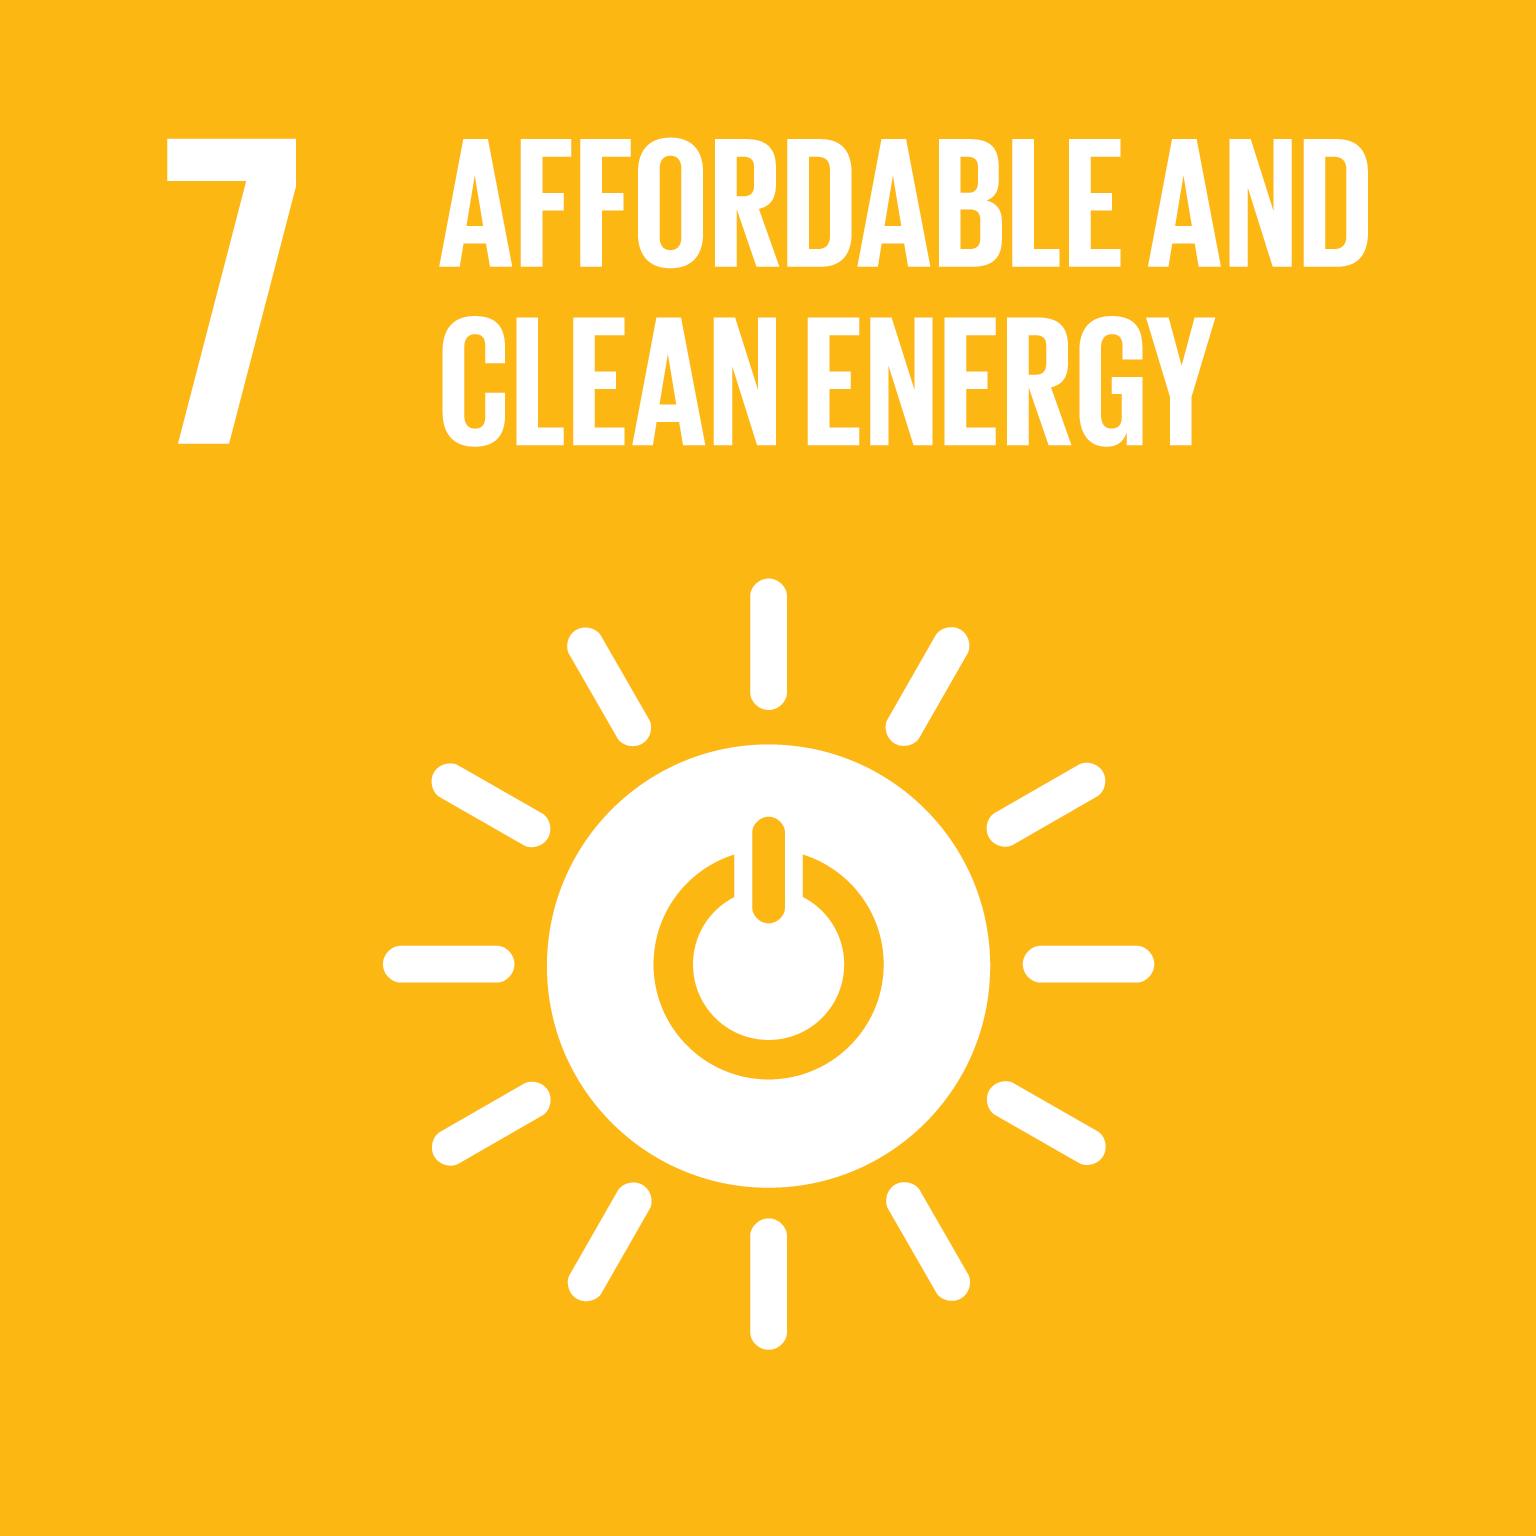 U.N. SDG goal 7, affordable and clean energy